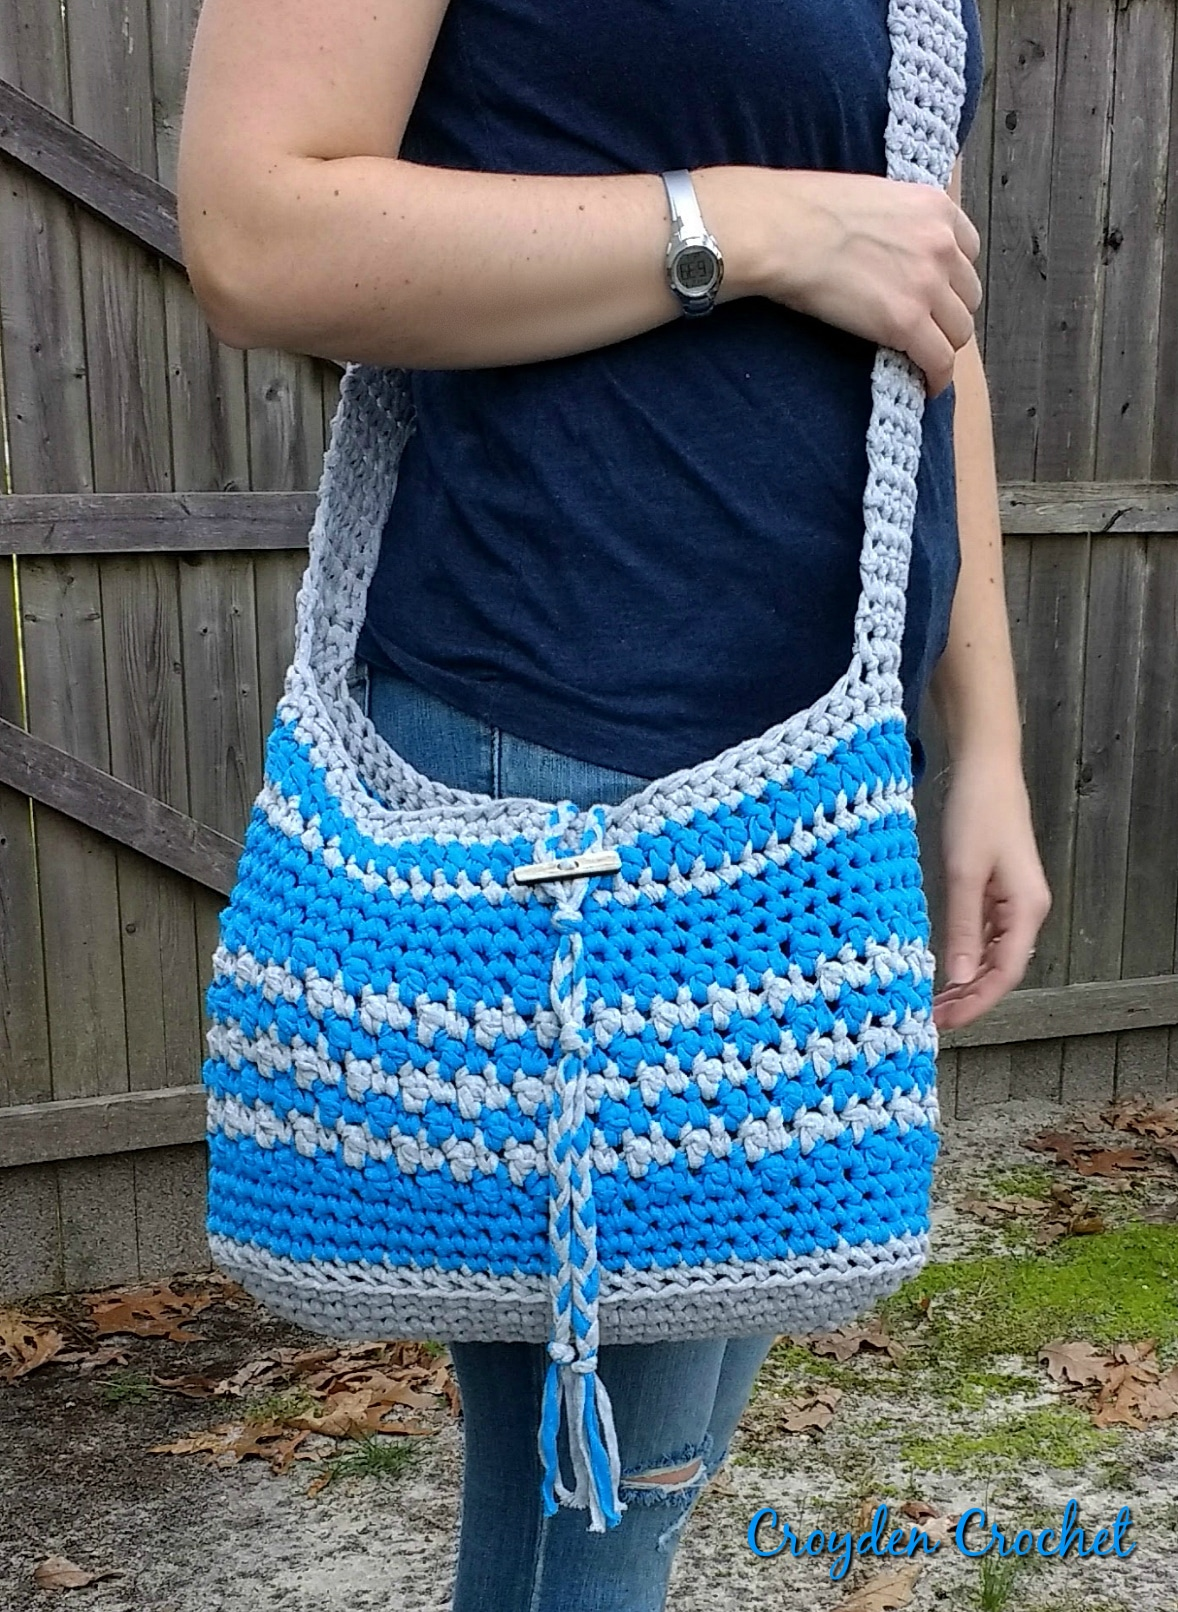 Boardwalk Crossbody Bag crochet pattern